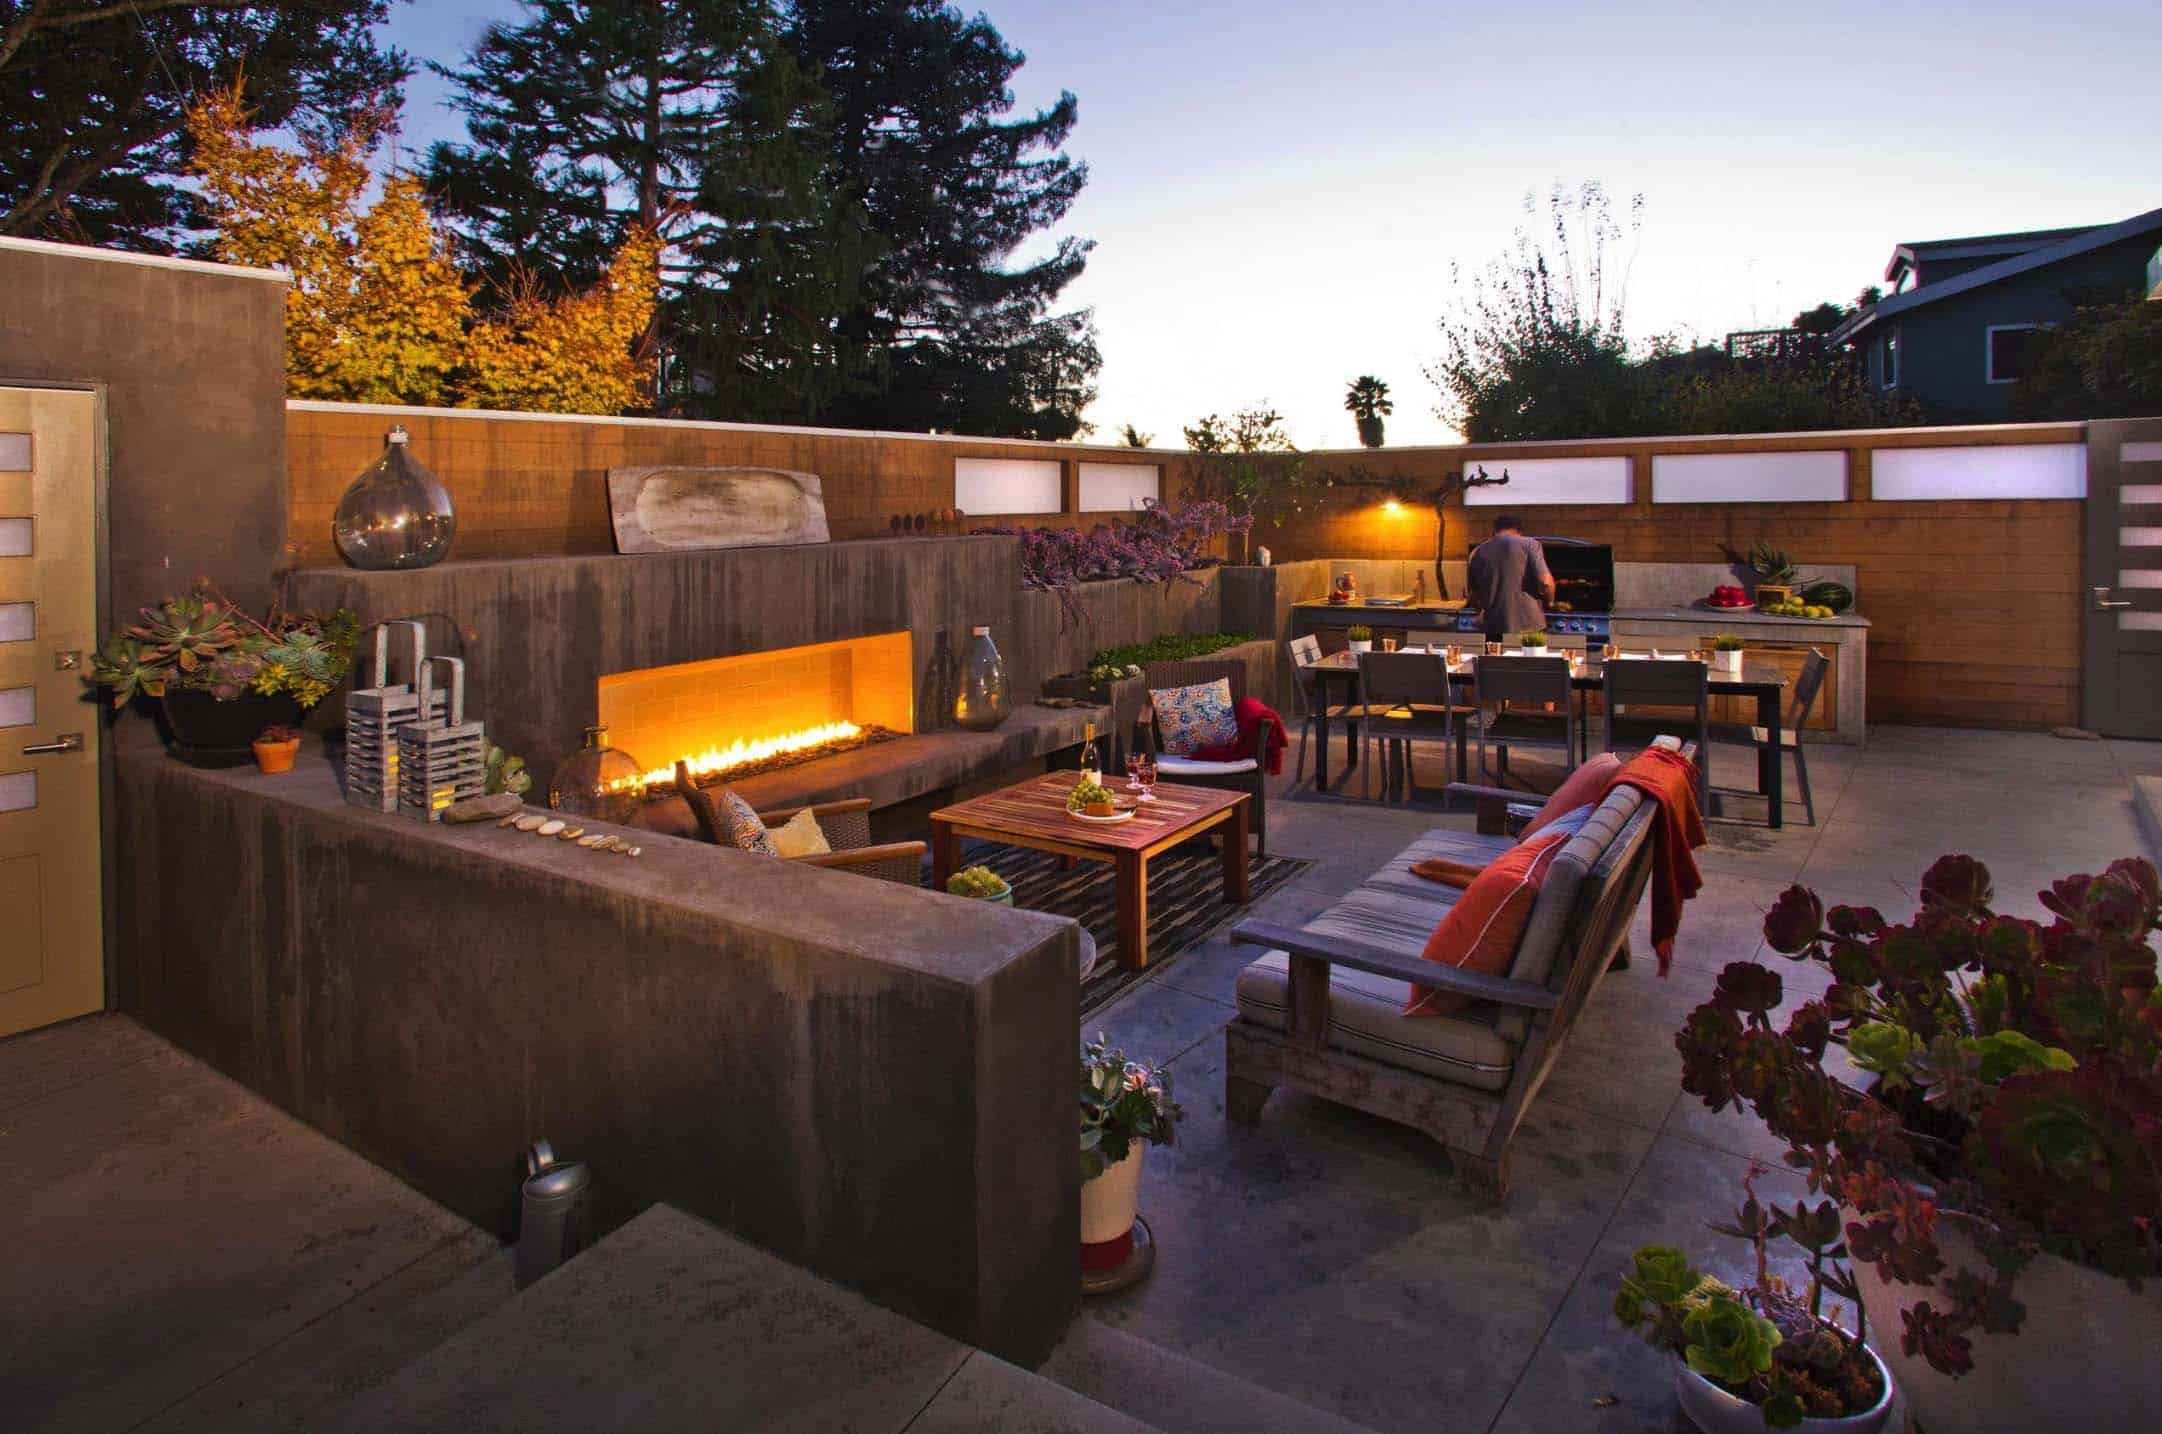 A Modern Outdoor Living Space In Seacliff Beach, California Features Areas  For Cooking, Eating And Entertaining. The Sofa Is From Smith And Hawkins.